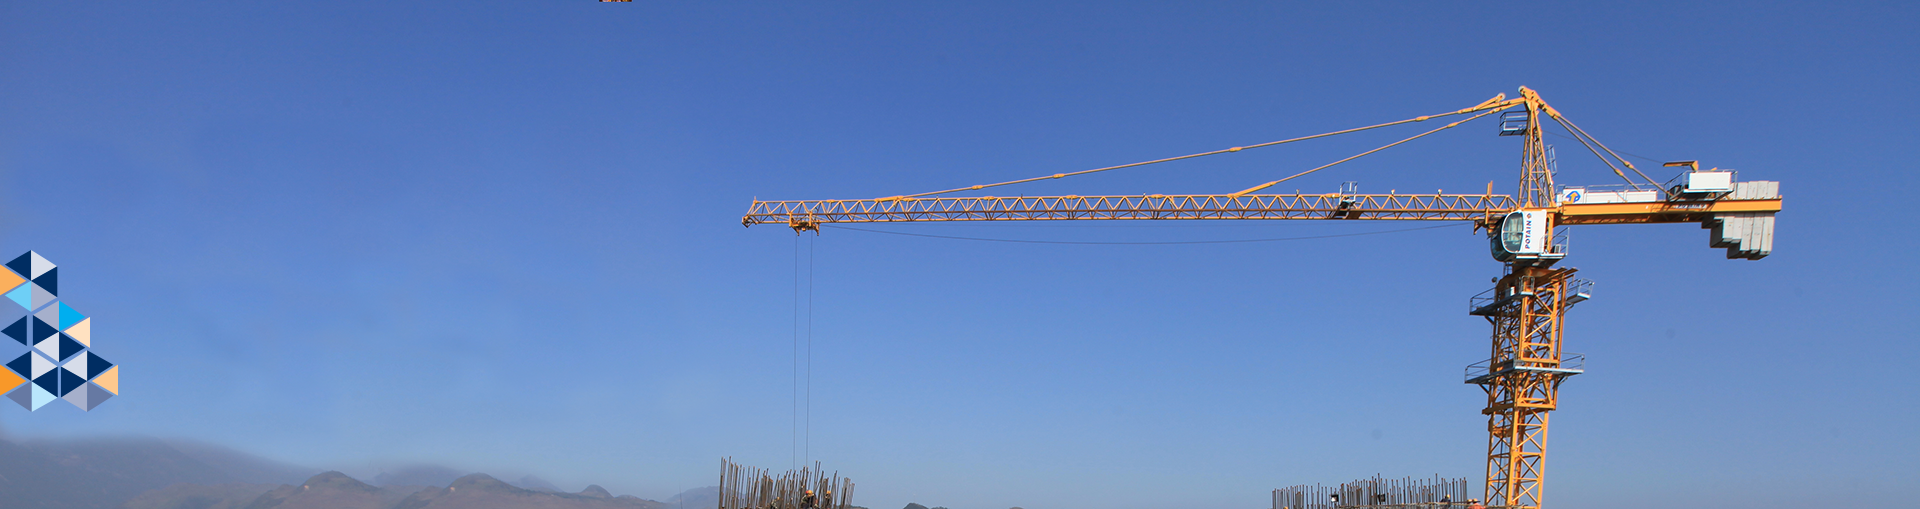 NIBM Towercranes